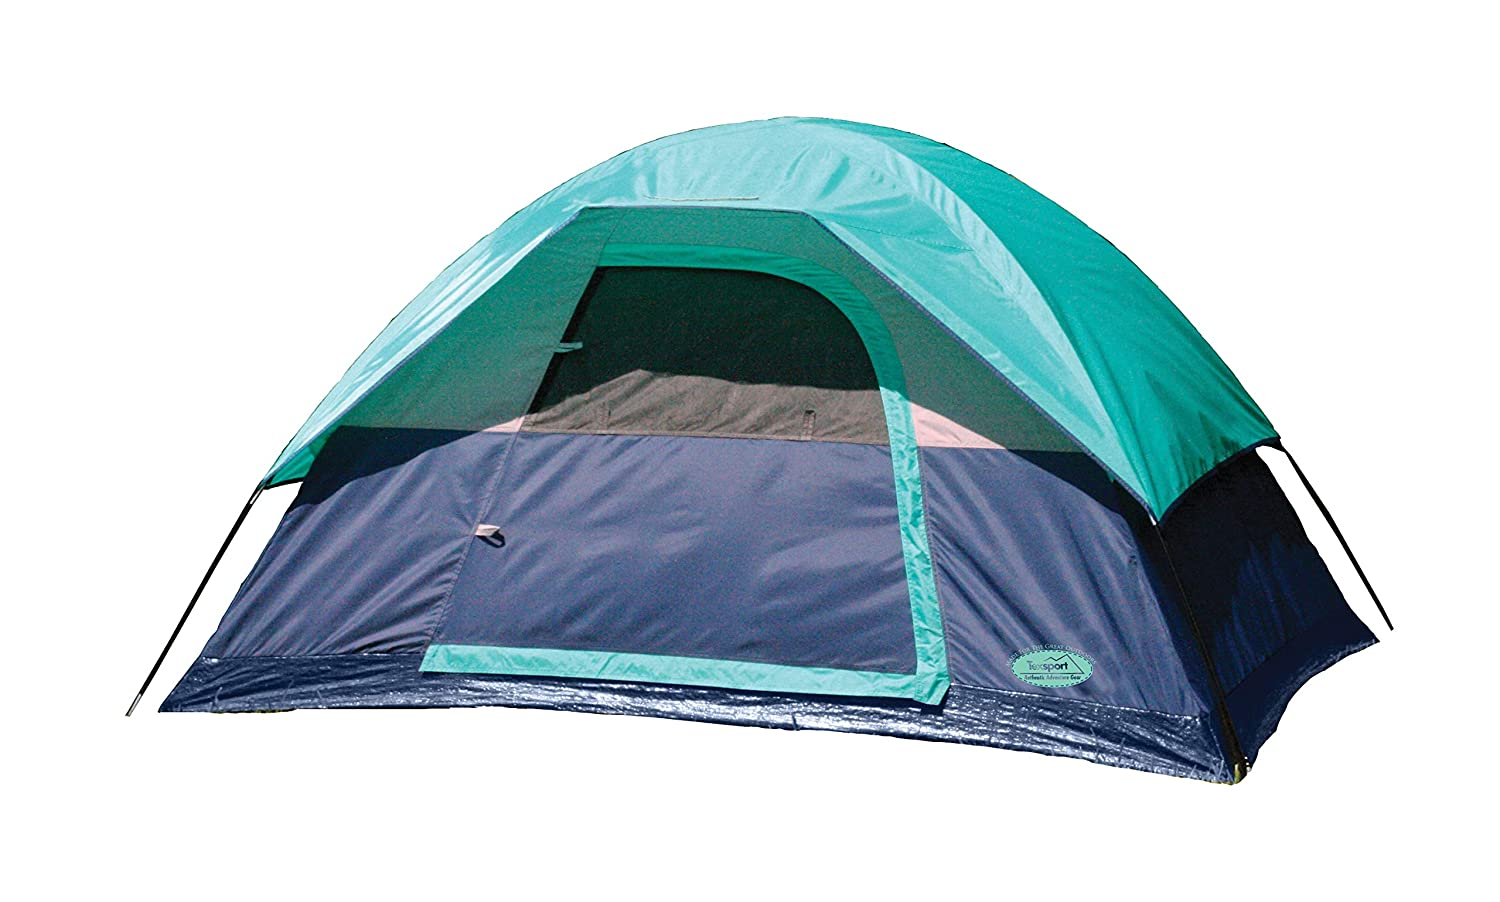 Texsport Riverstone 2 Person Square Dome Tent by Texsport   B003V3SFNC